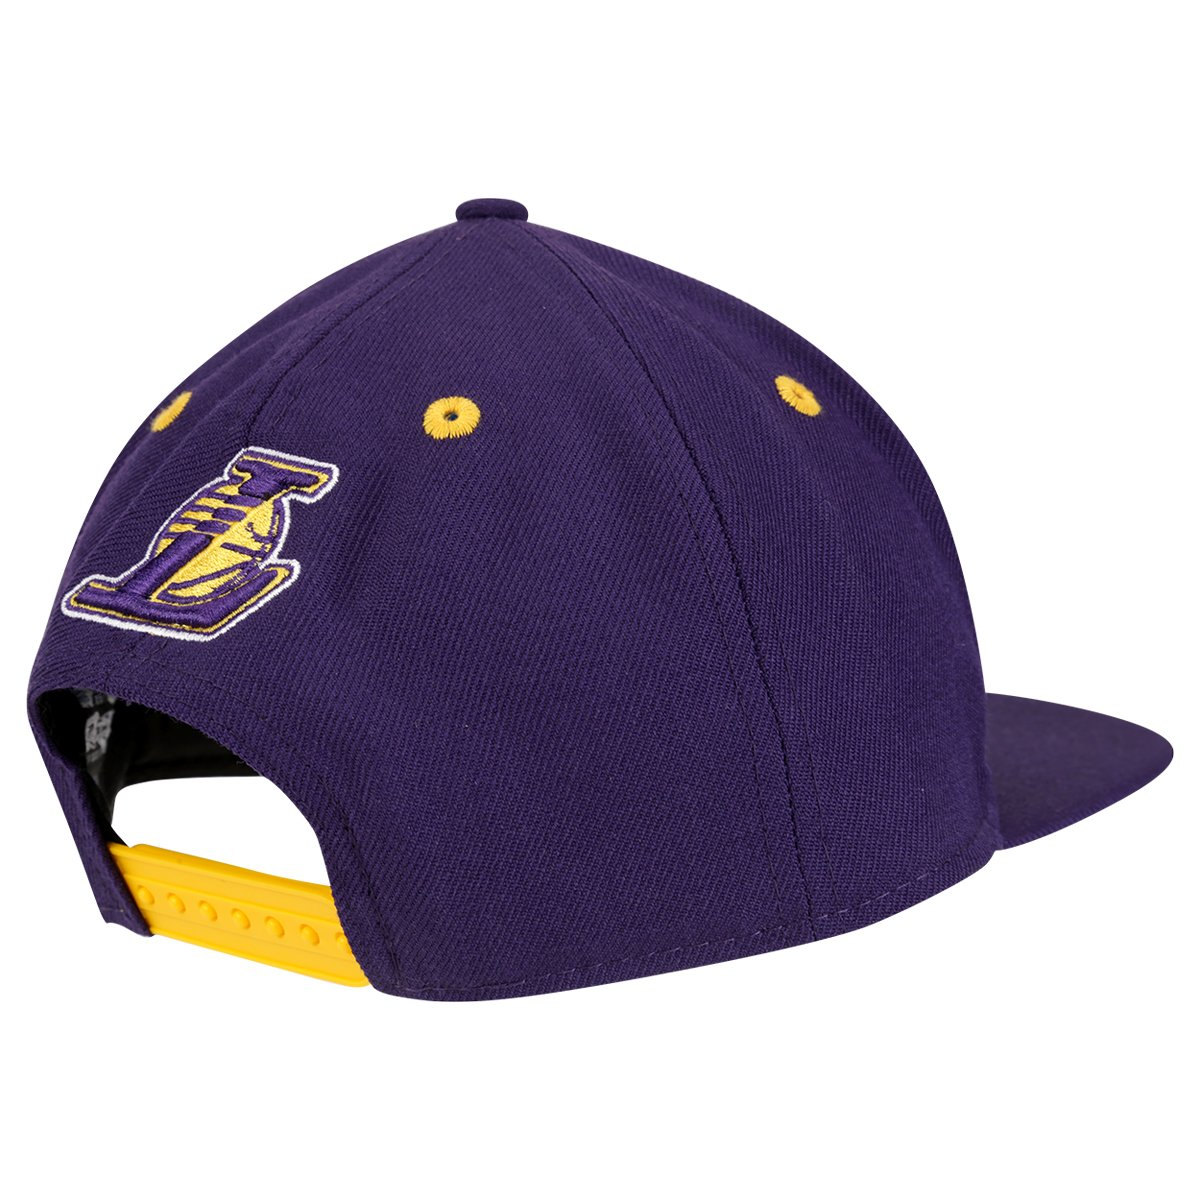 Boné New Era 950 Of Sn NBA Los Angeles Lakers - Compre Agora  0561fd38432